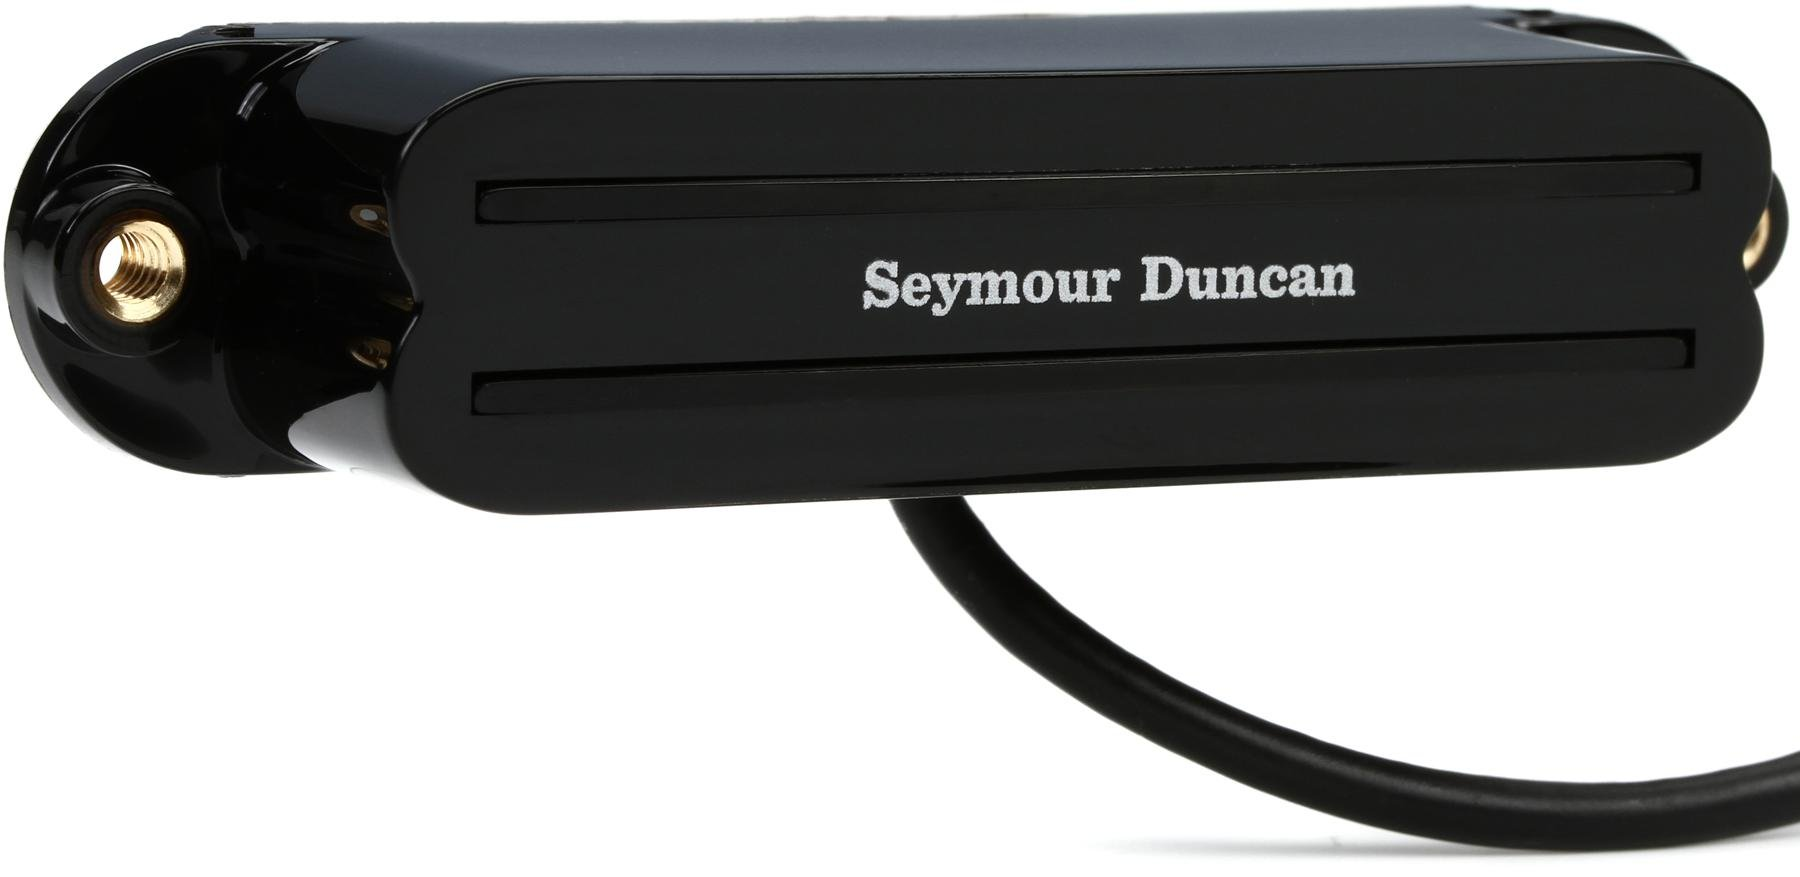 Seymour Duncan SCR-1n Cool Rails Strat Pickup - Black Neck | Sweetwater